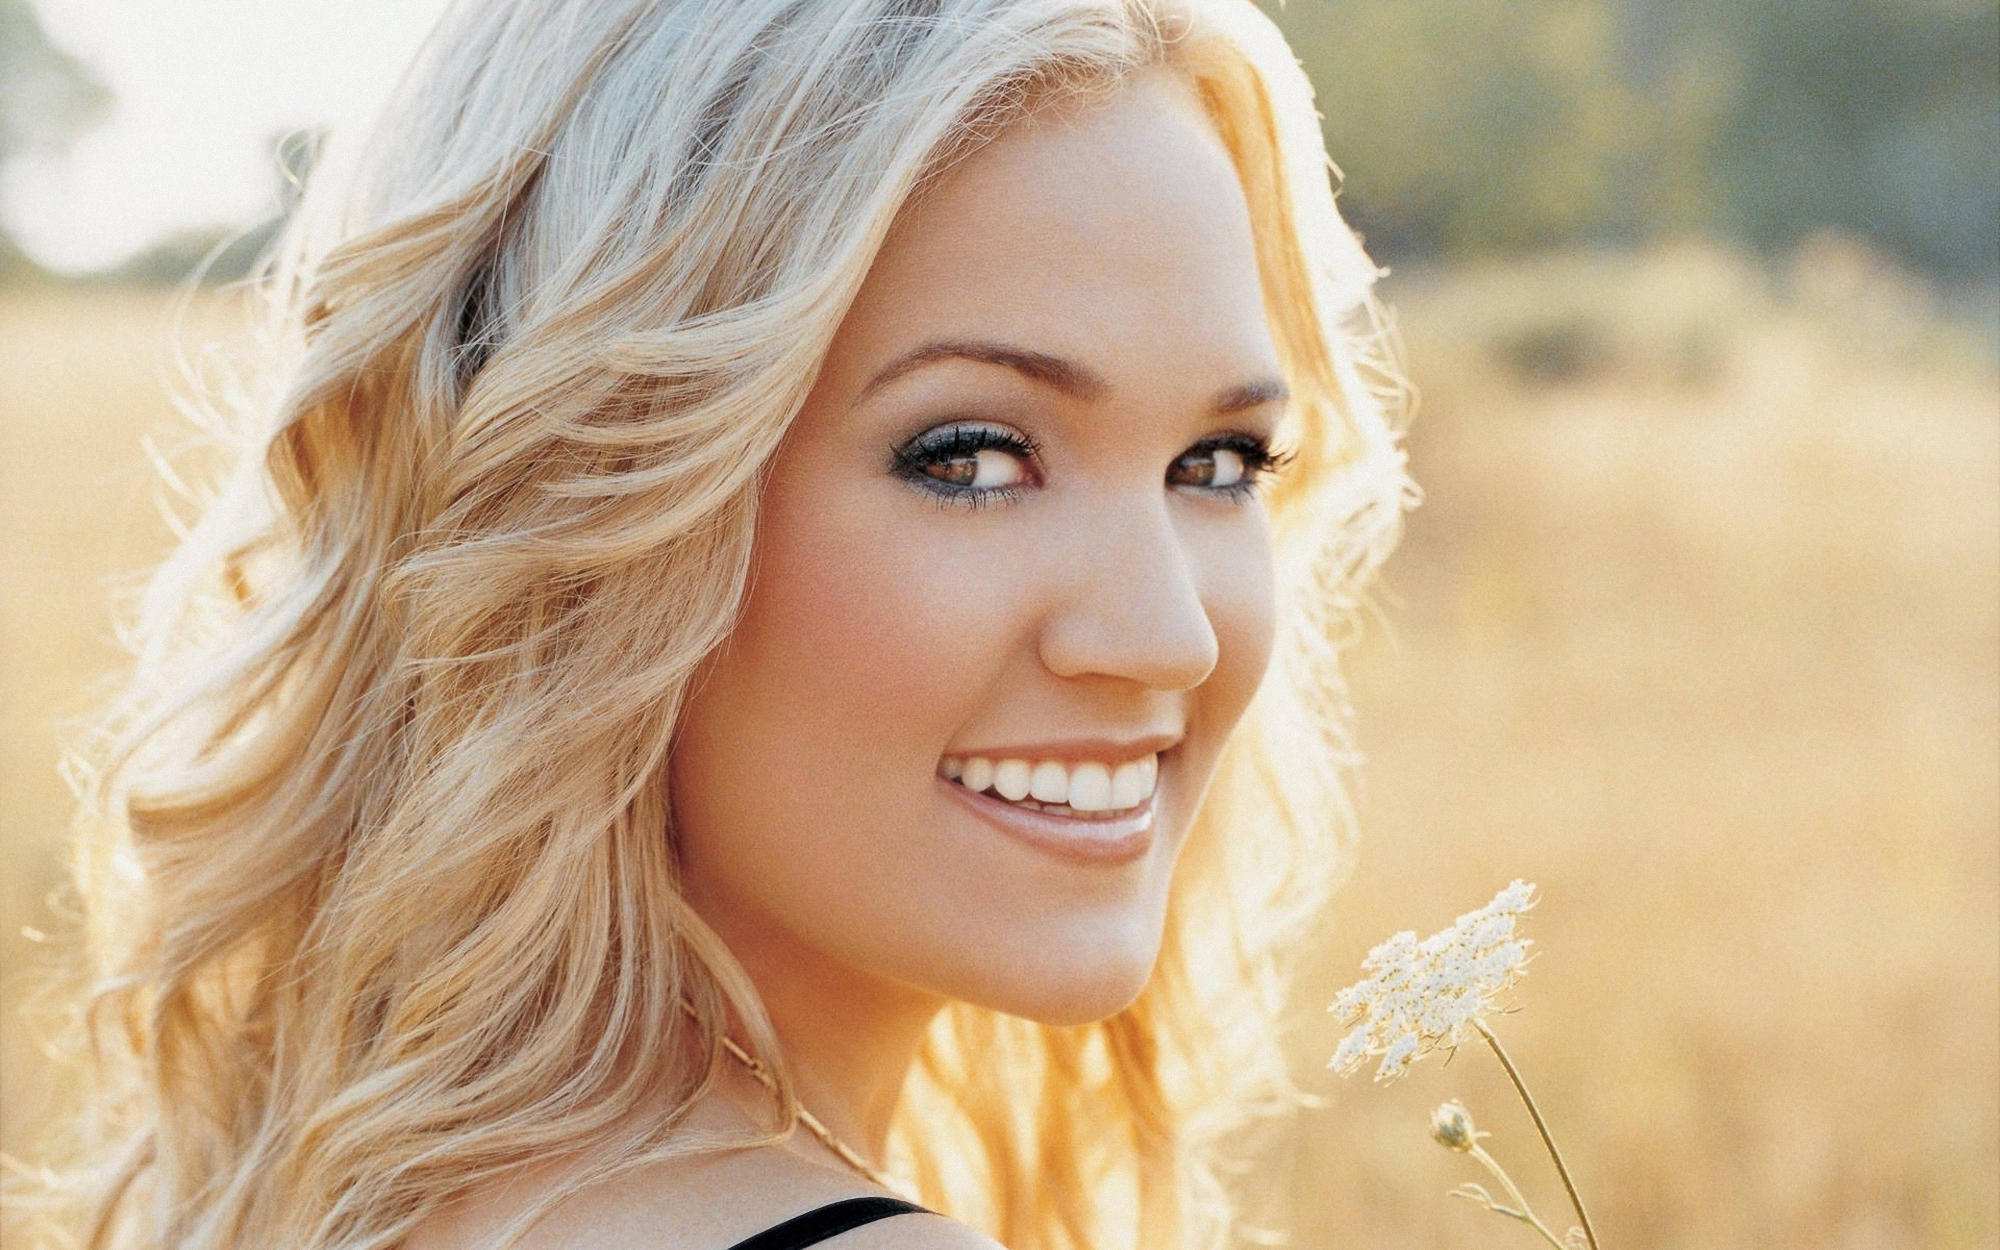 Carrie underwood hd wallpaper background image - Carrie underwood hd wallpaper ...